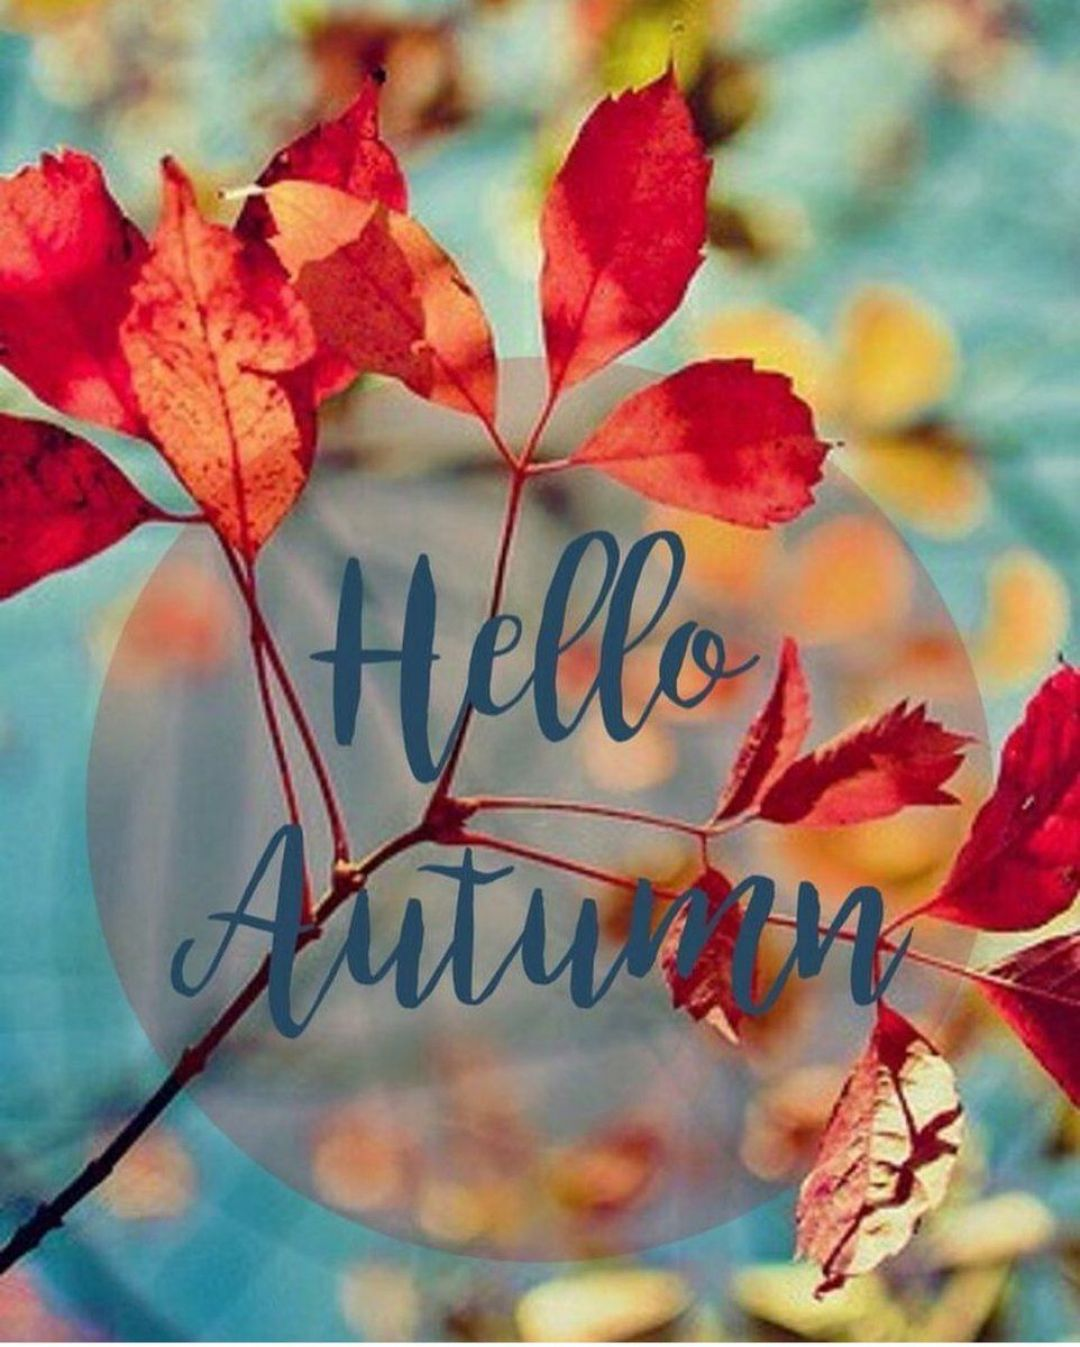 Hello Autumn Aesthetic HD Wallpapers (Desktop Background / Android / iPhone) (1080p, 4k) (38771) - 3D / Abstract